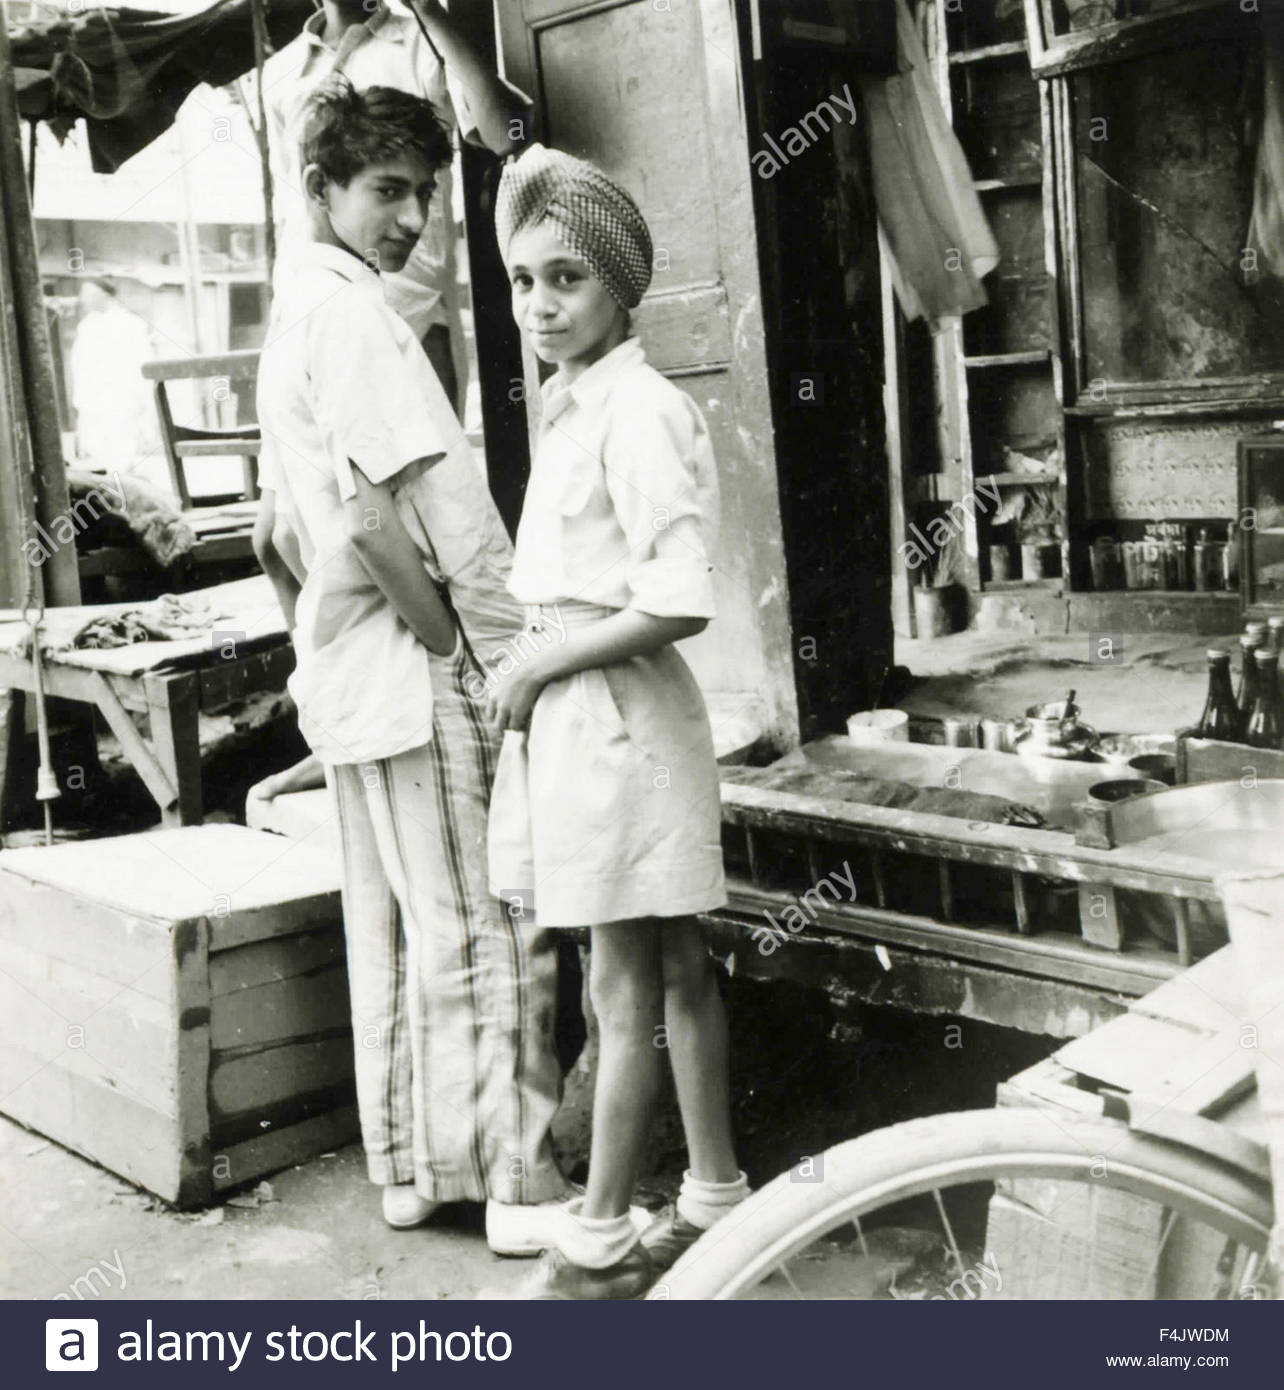 Indian children in a store - Stock Image